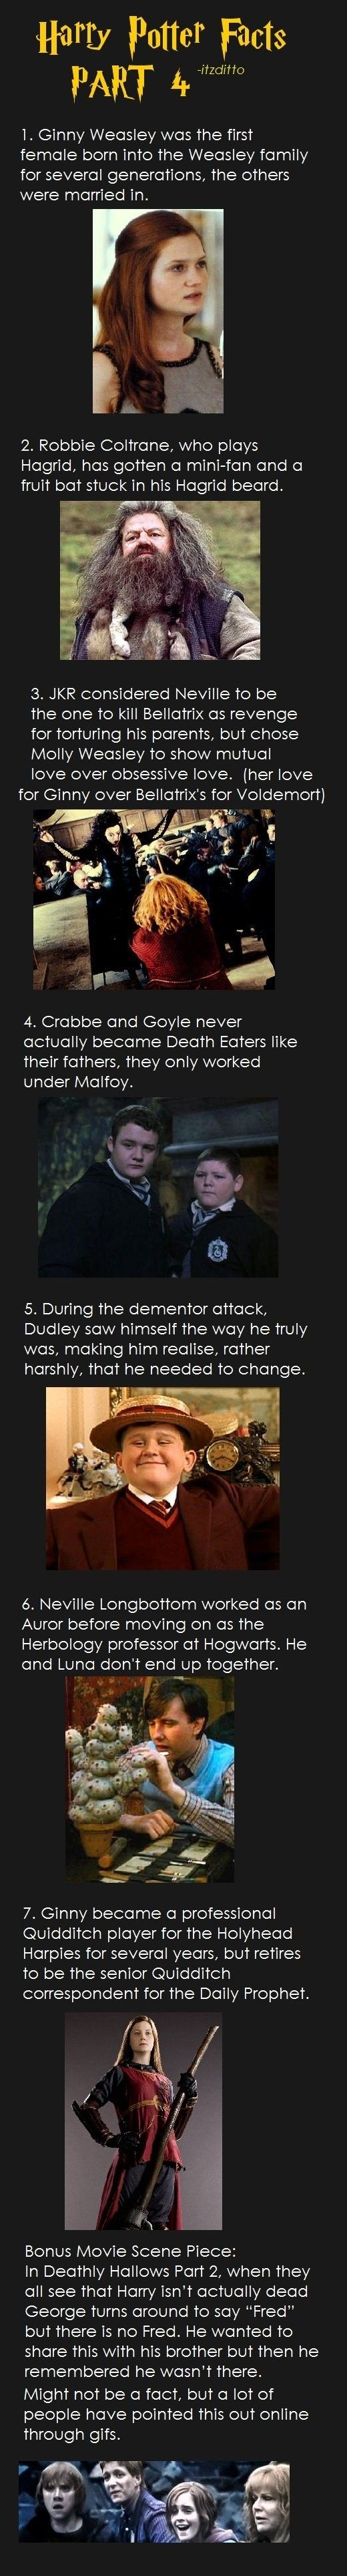 Harry Potter Facts 4 =P